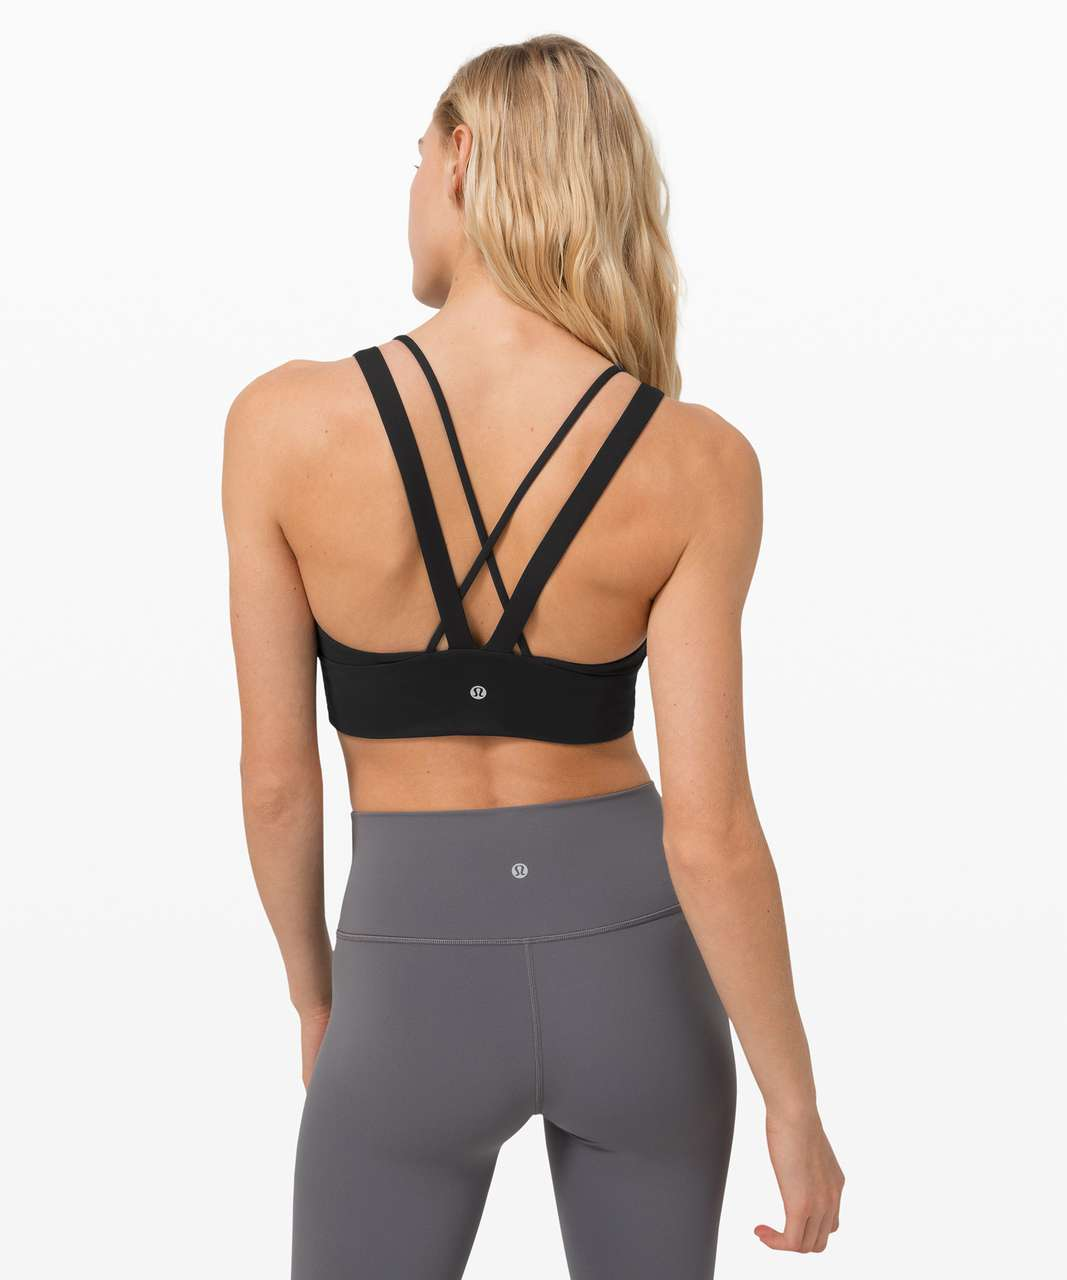 Lululemon Pushing Limits Bra *Light Support For C/D Cup - Black